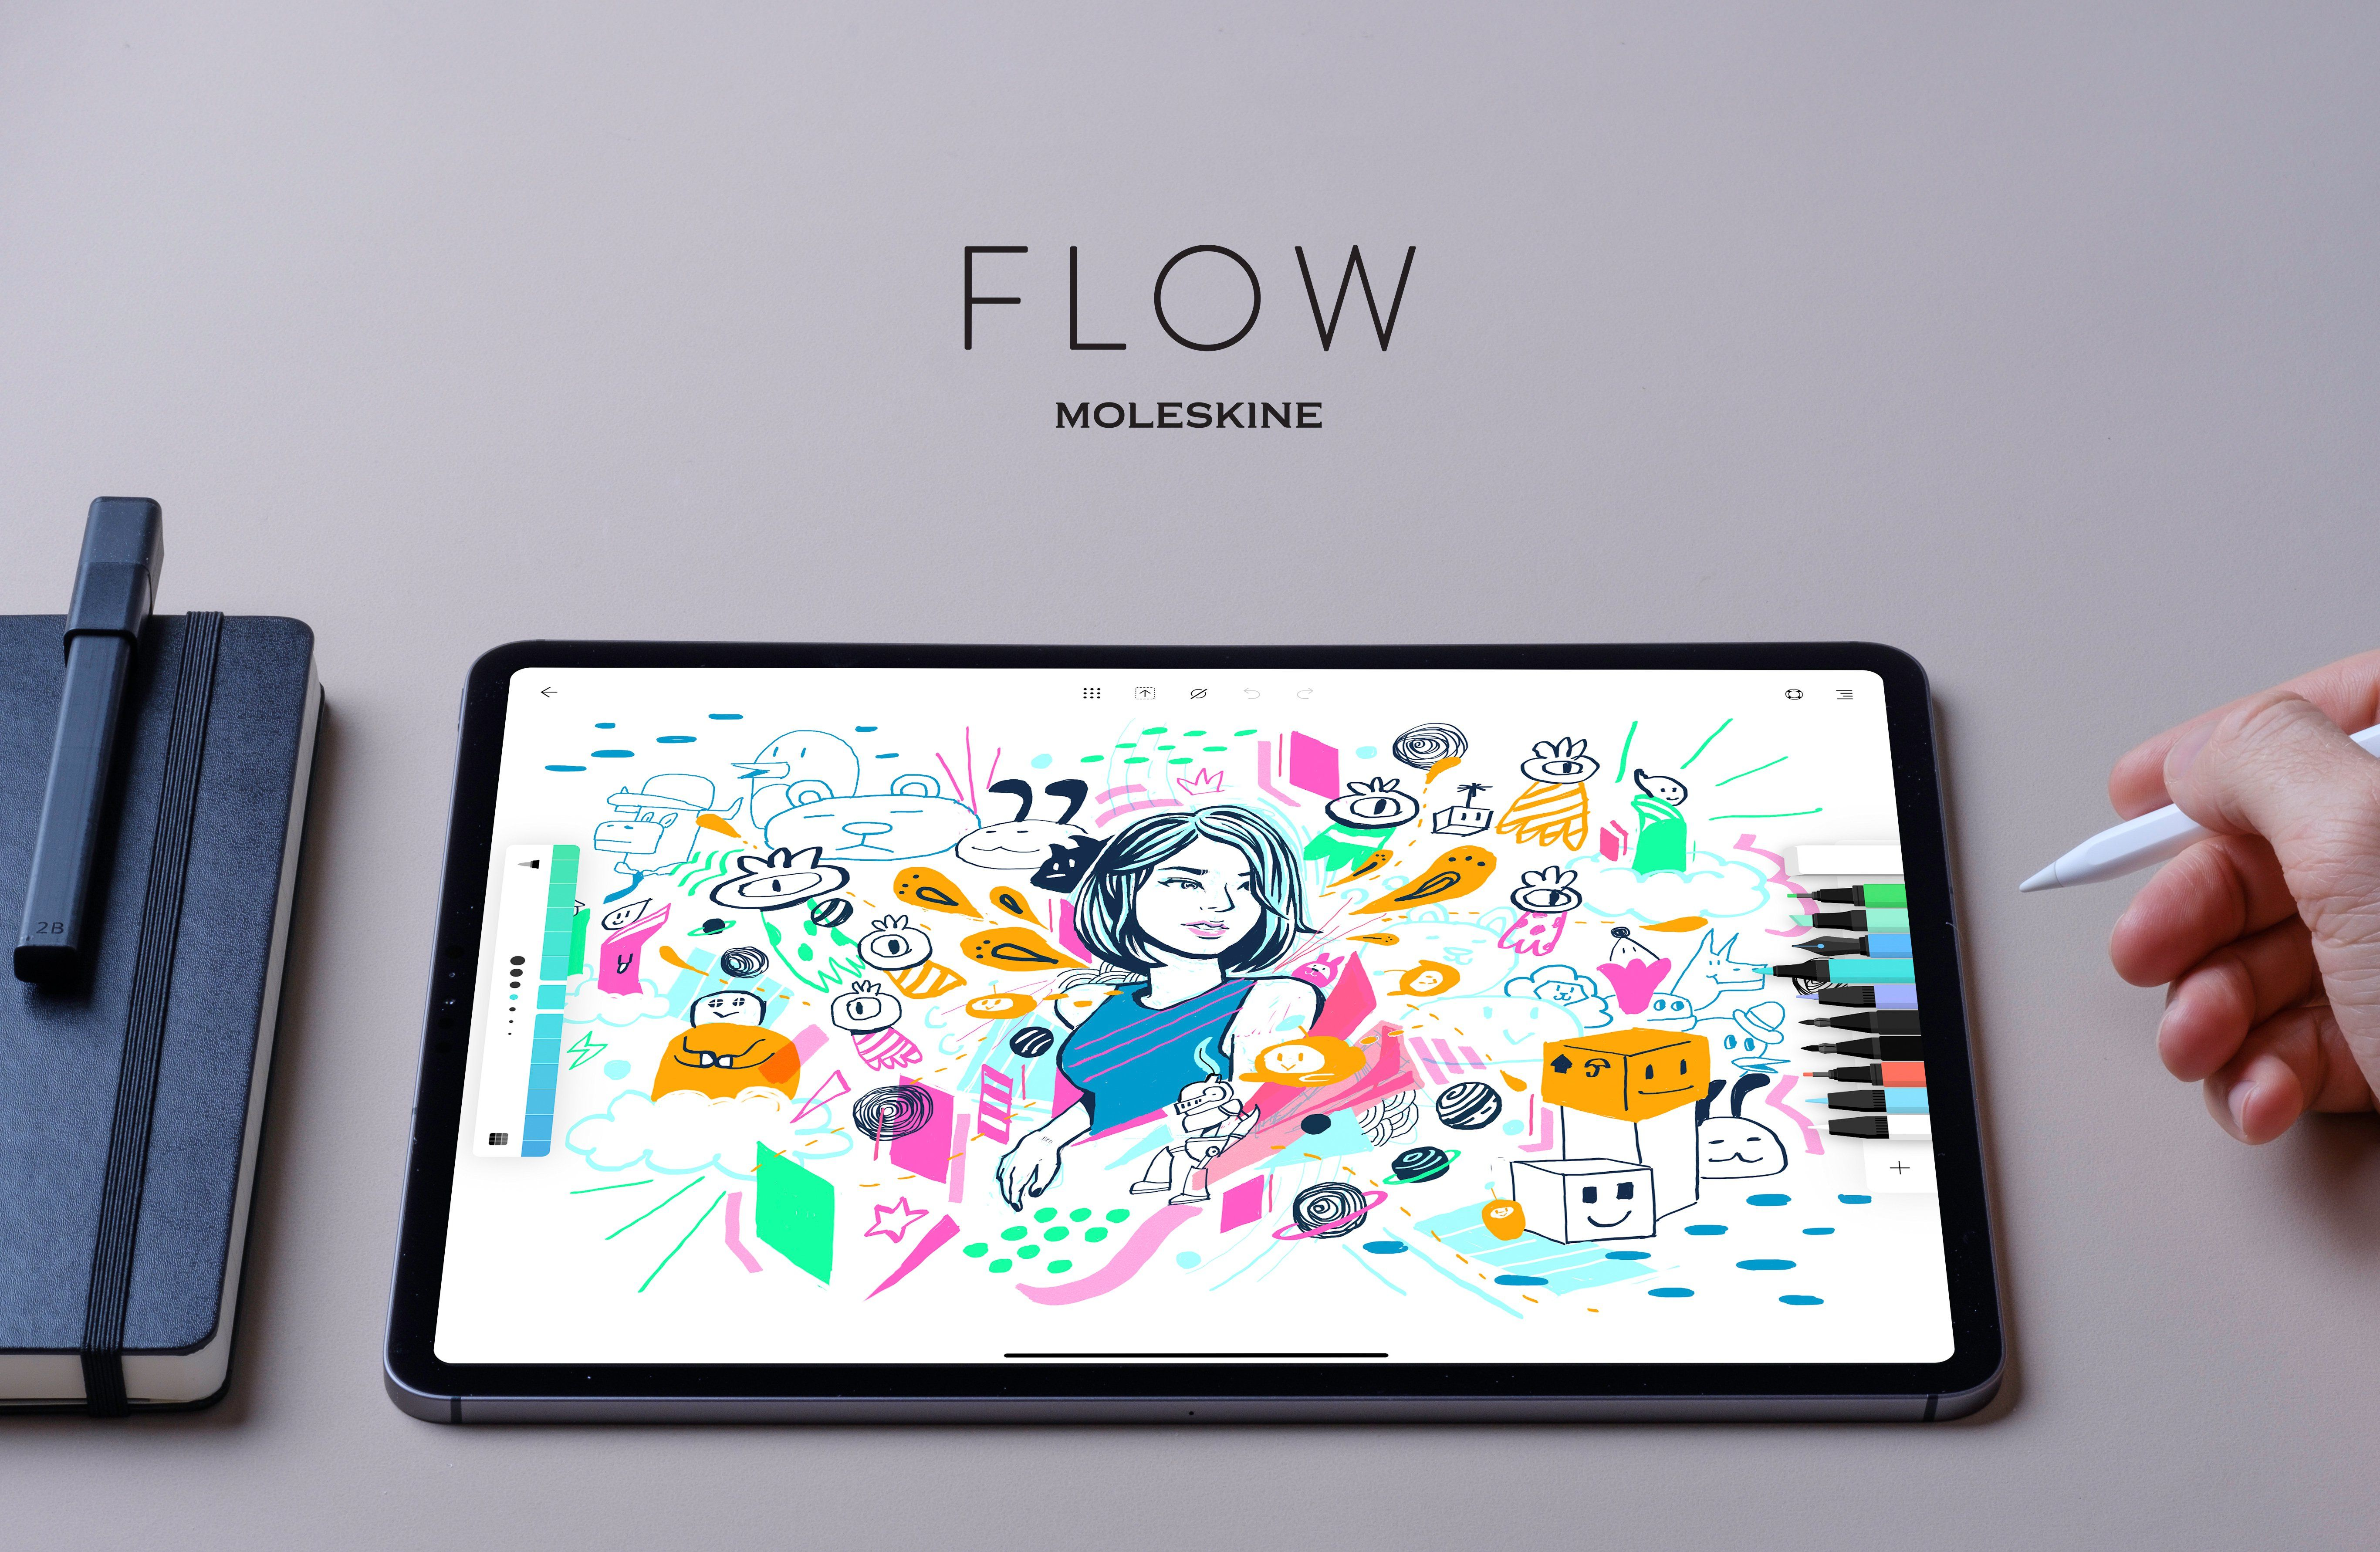 Flow by Moleskine Brings the Notebook Experience to Your